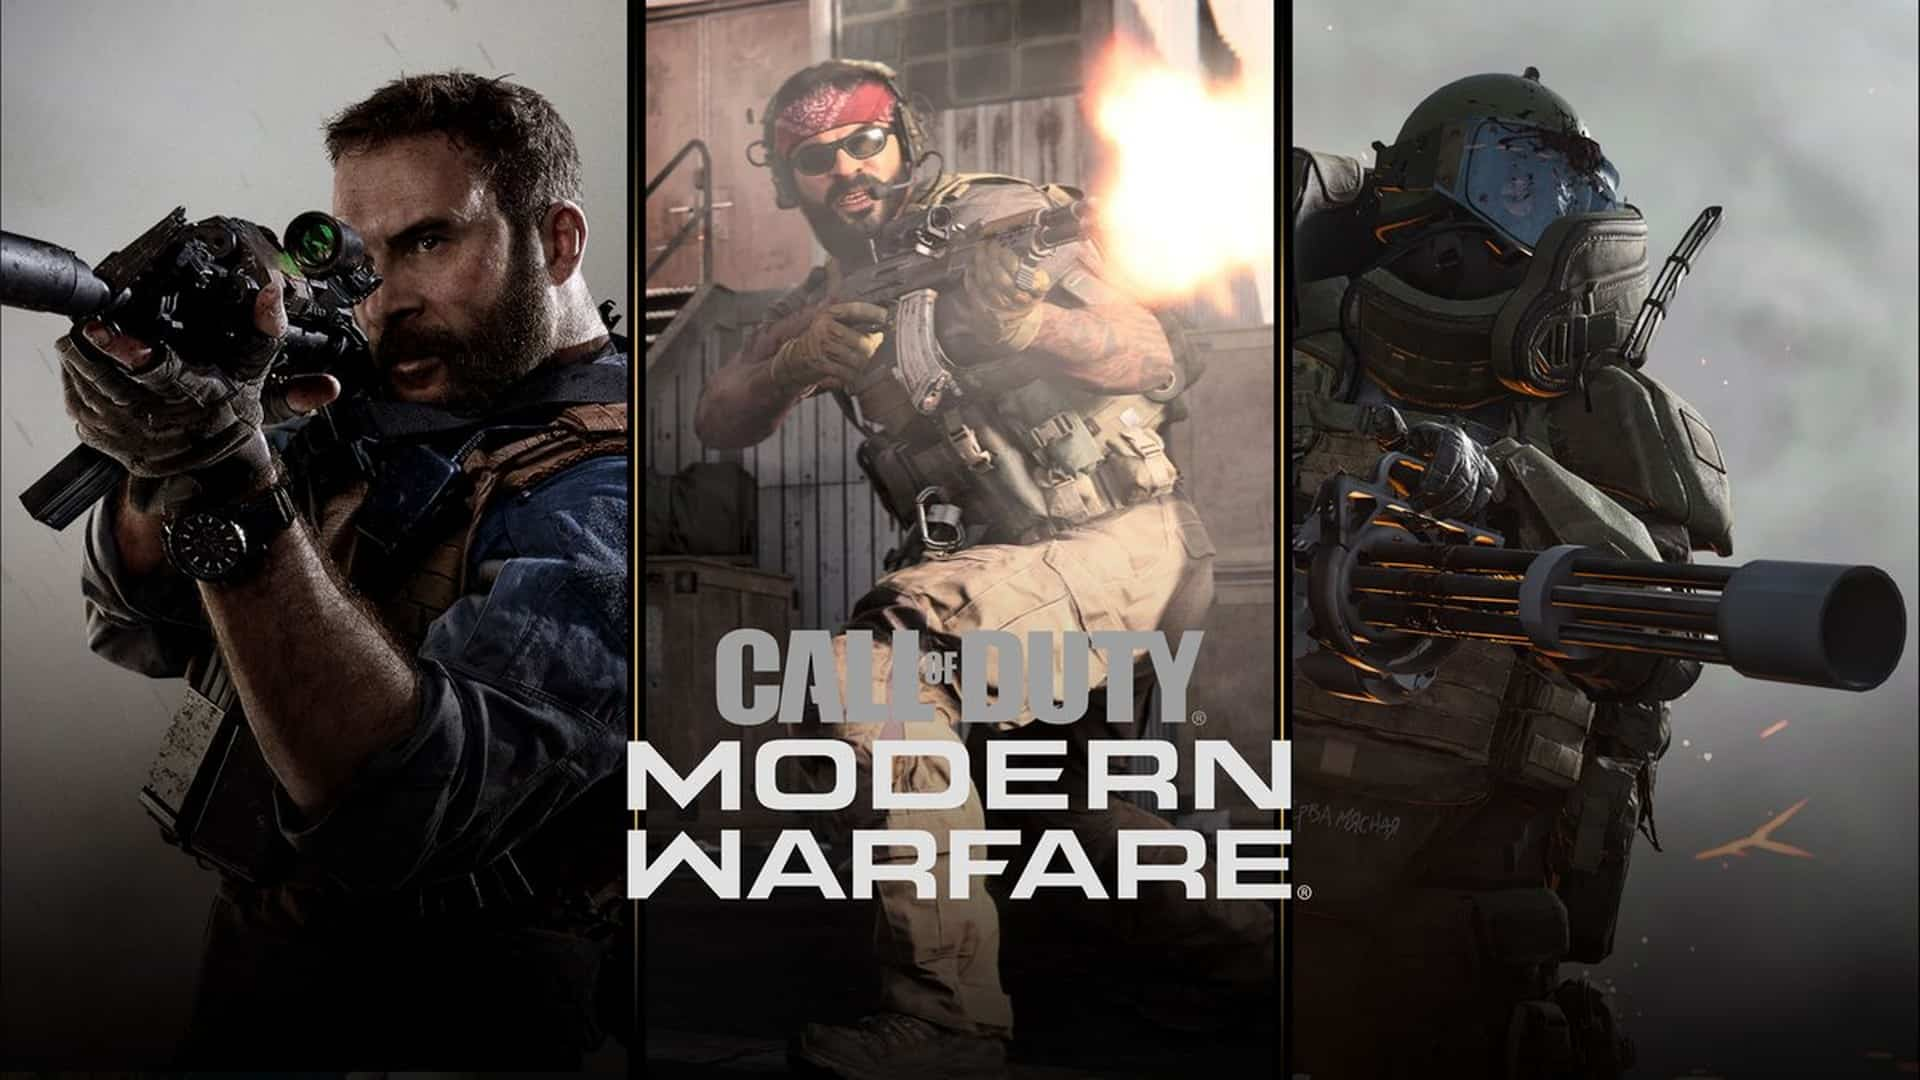 Call Of Duty: Modern Warfare Will Introduce A New Battle Pass System, Not A Loot Box System